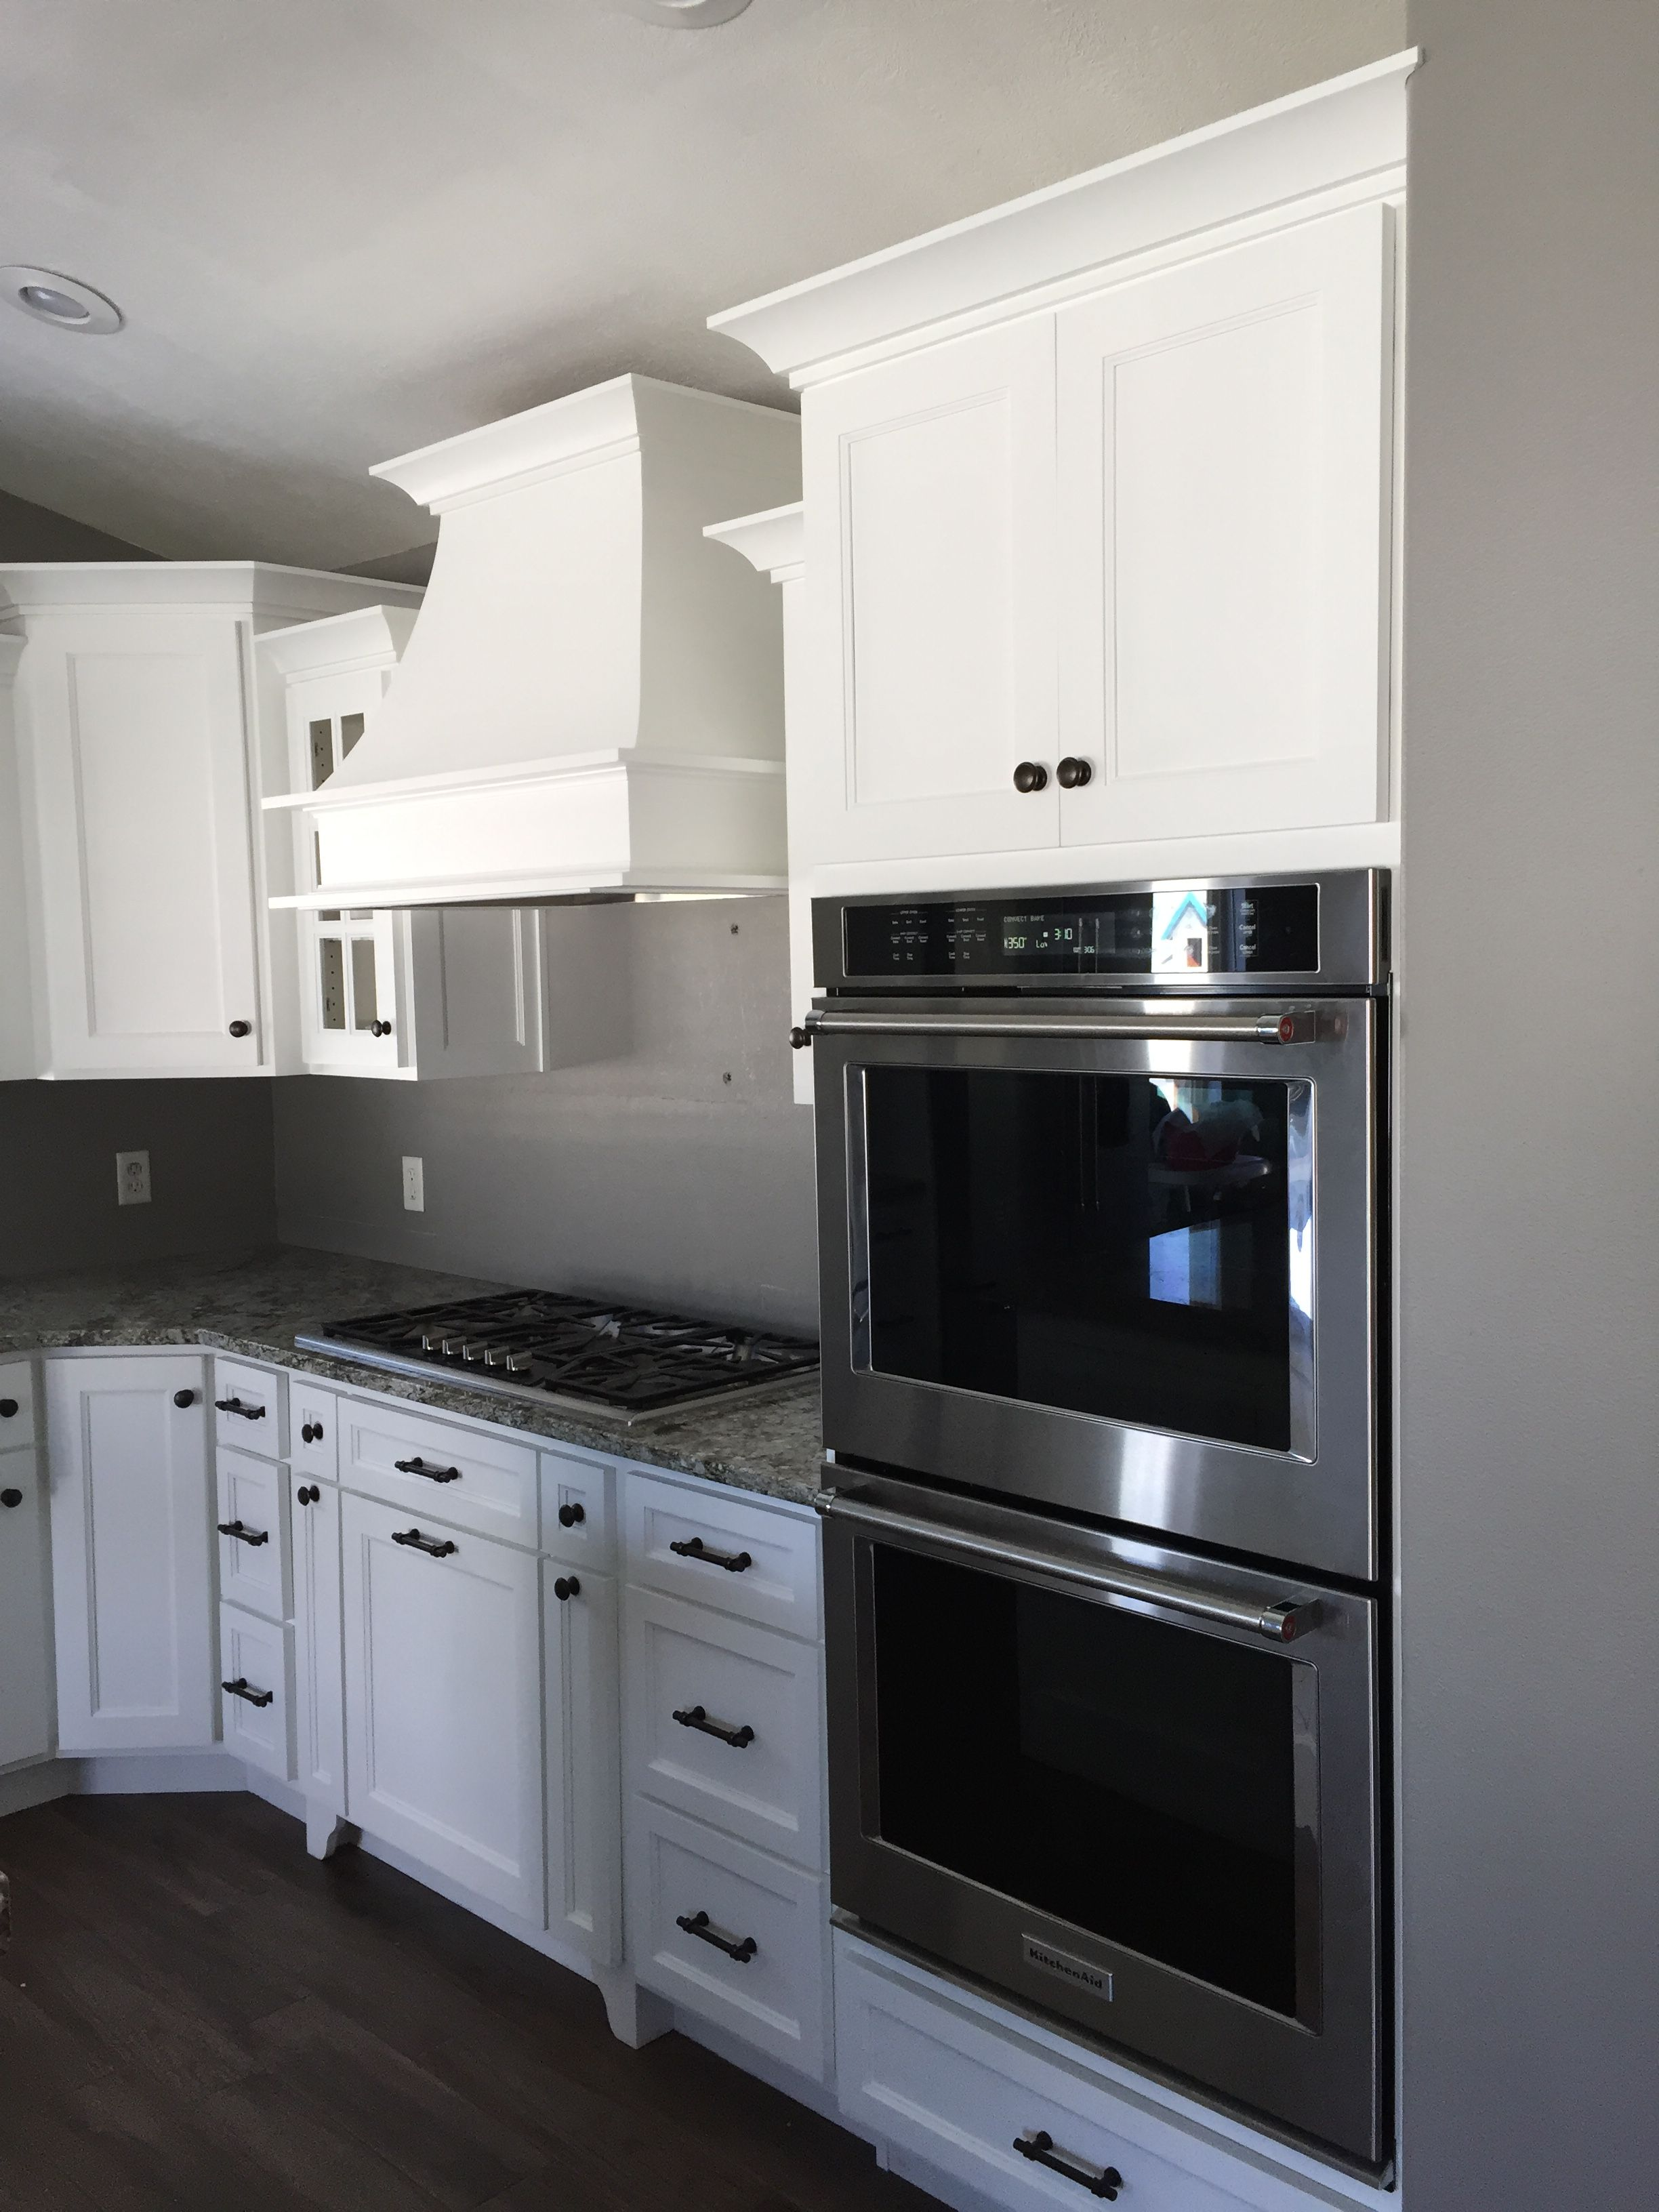 White Kitchen Cabinets With Double Oven Gas Cooktop And White Hood White Modern Kitchen White Kitchen Cabinets Modern White Kitchen Cabinets